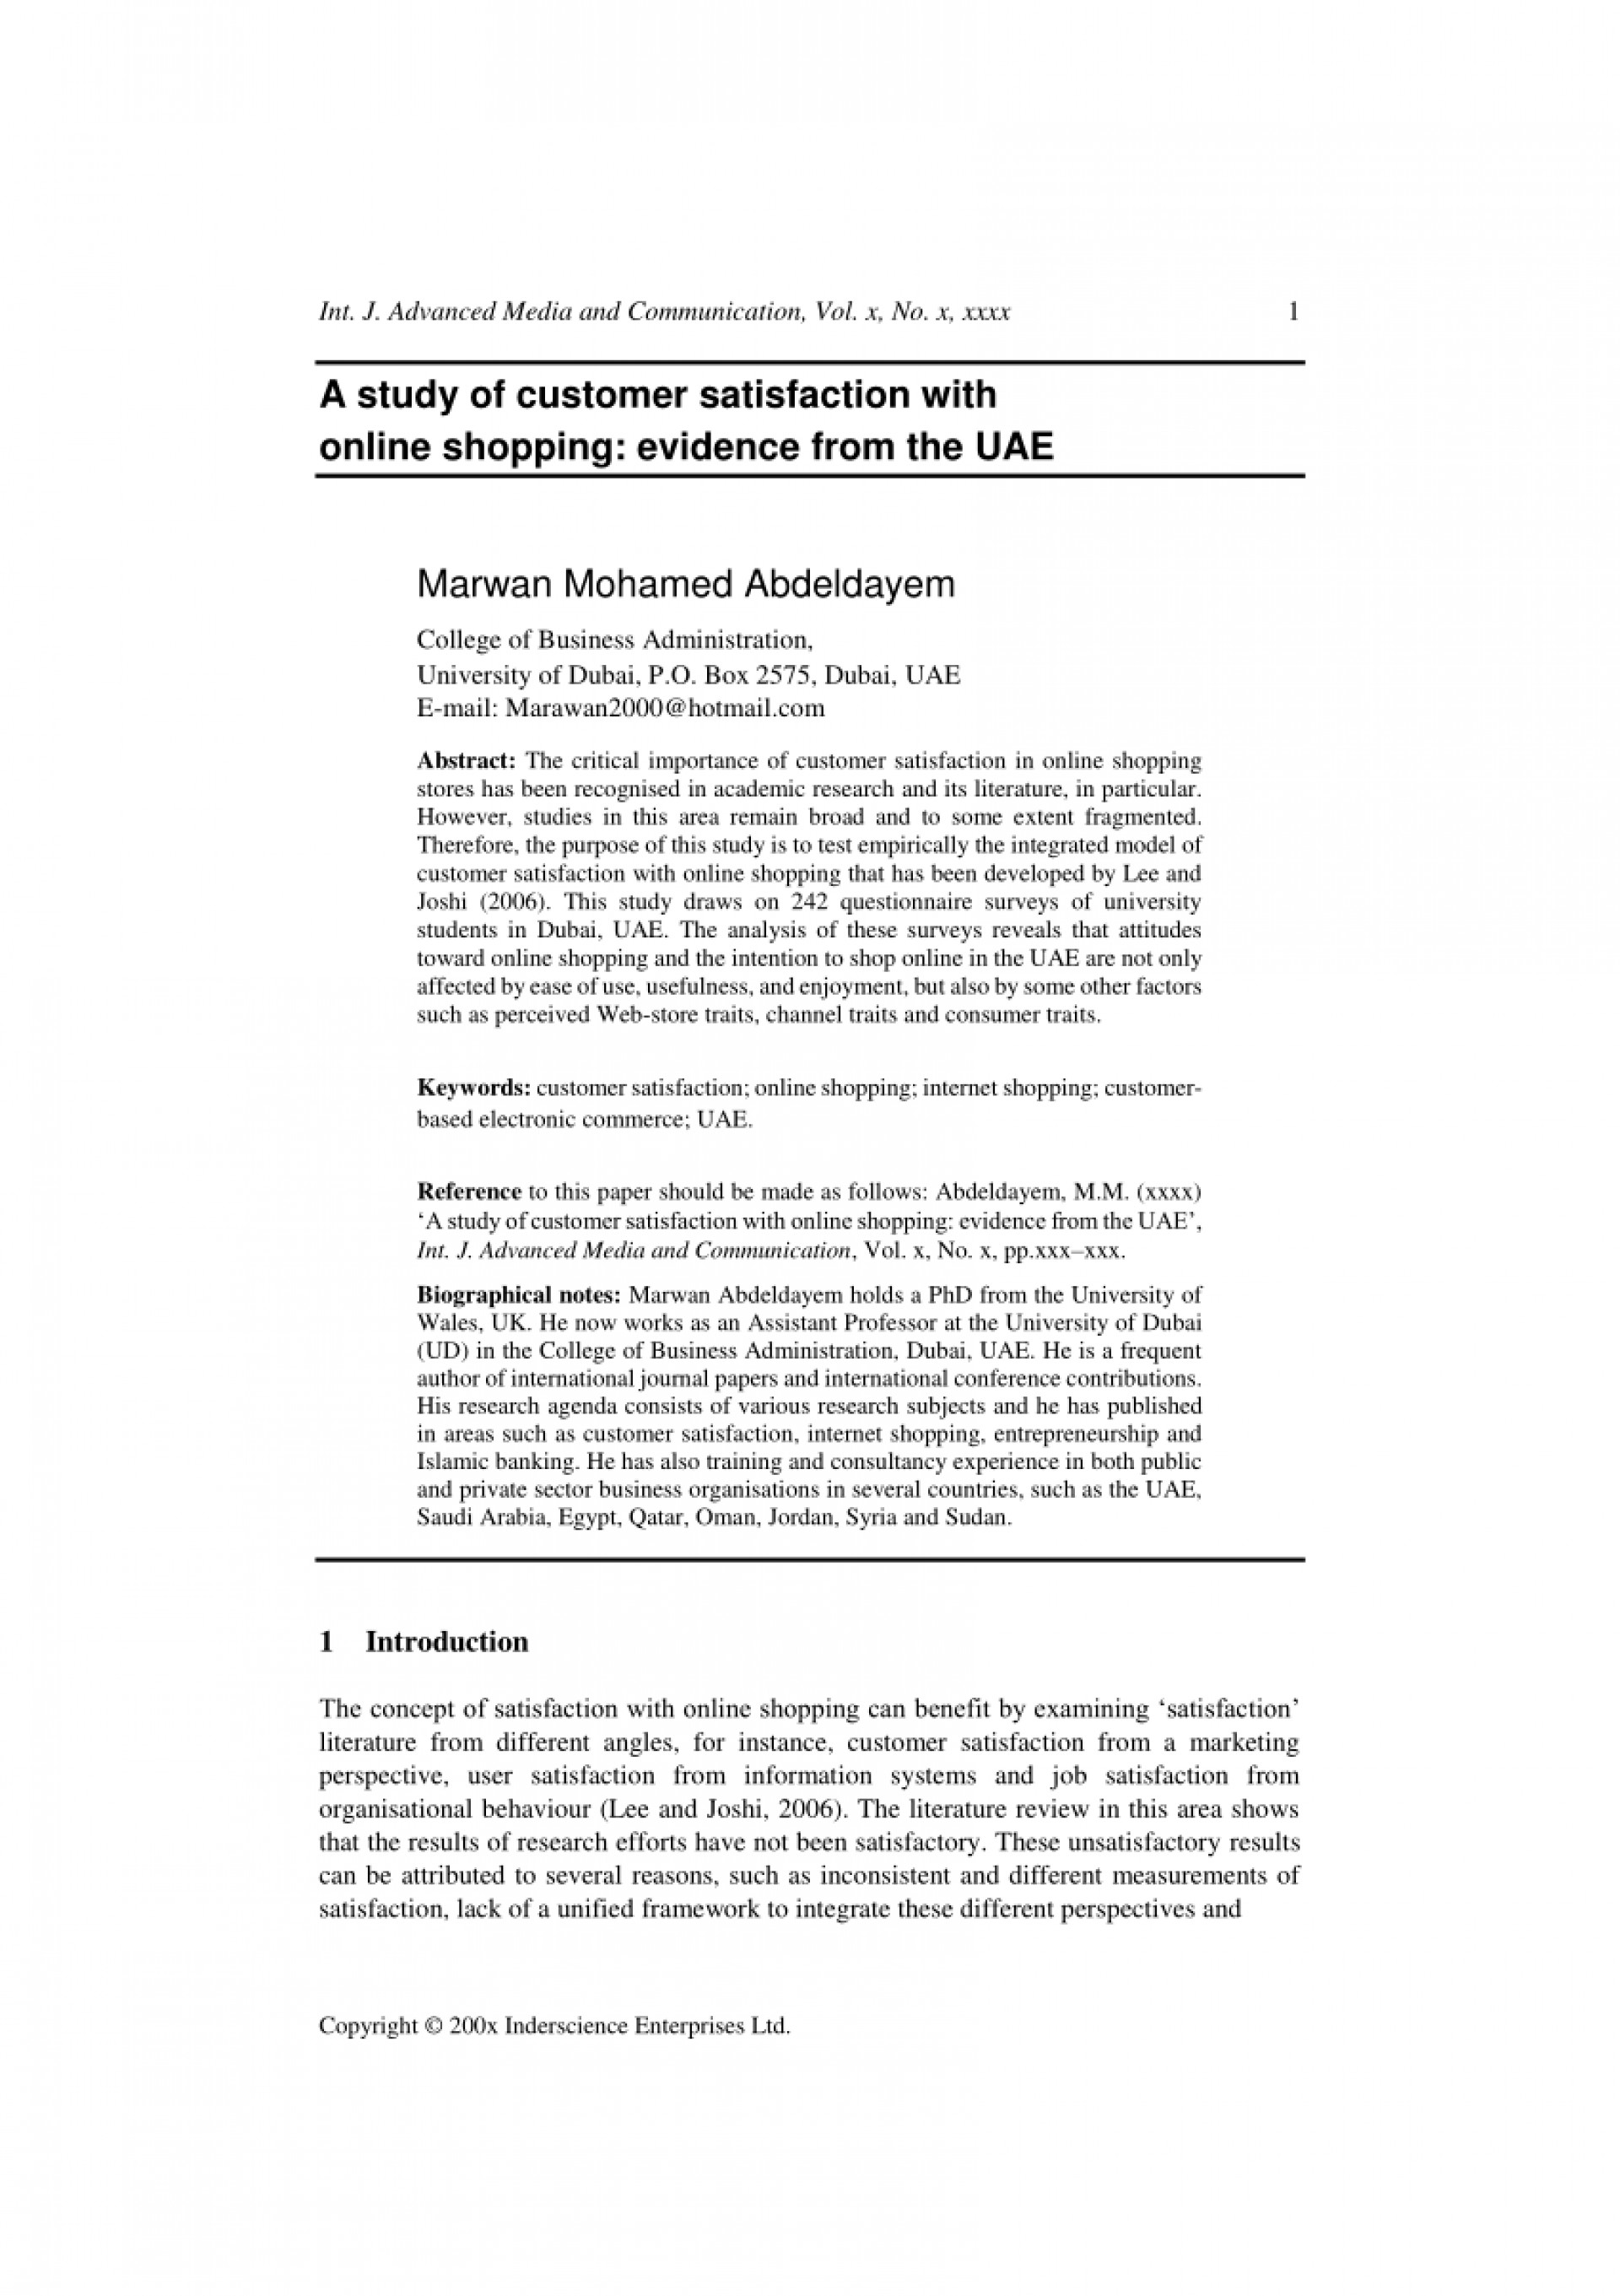 001 Online Shopping Research Paper Philippines Striking 1920